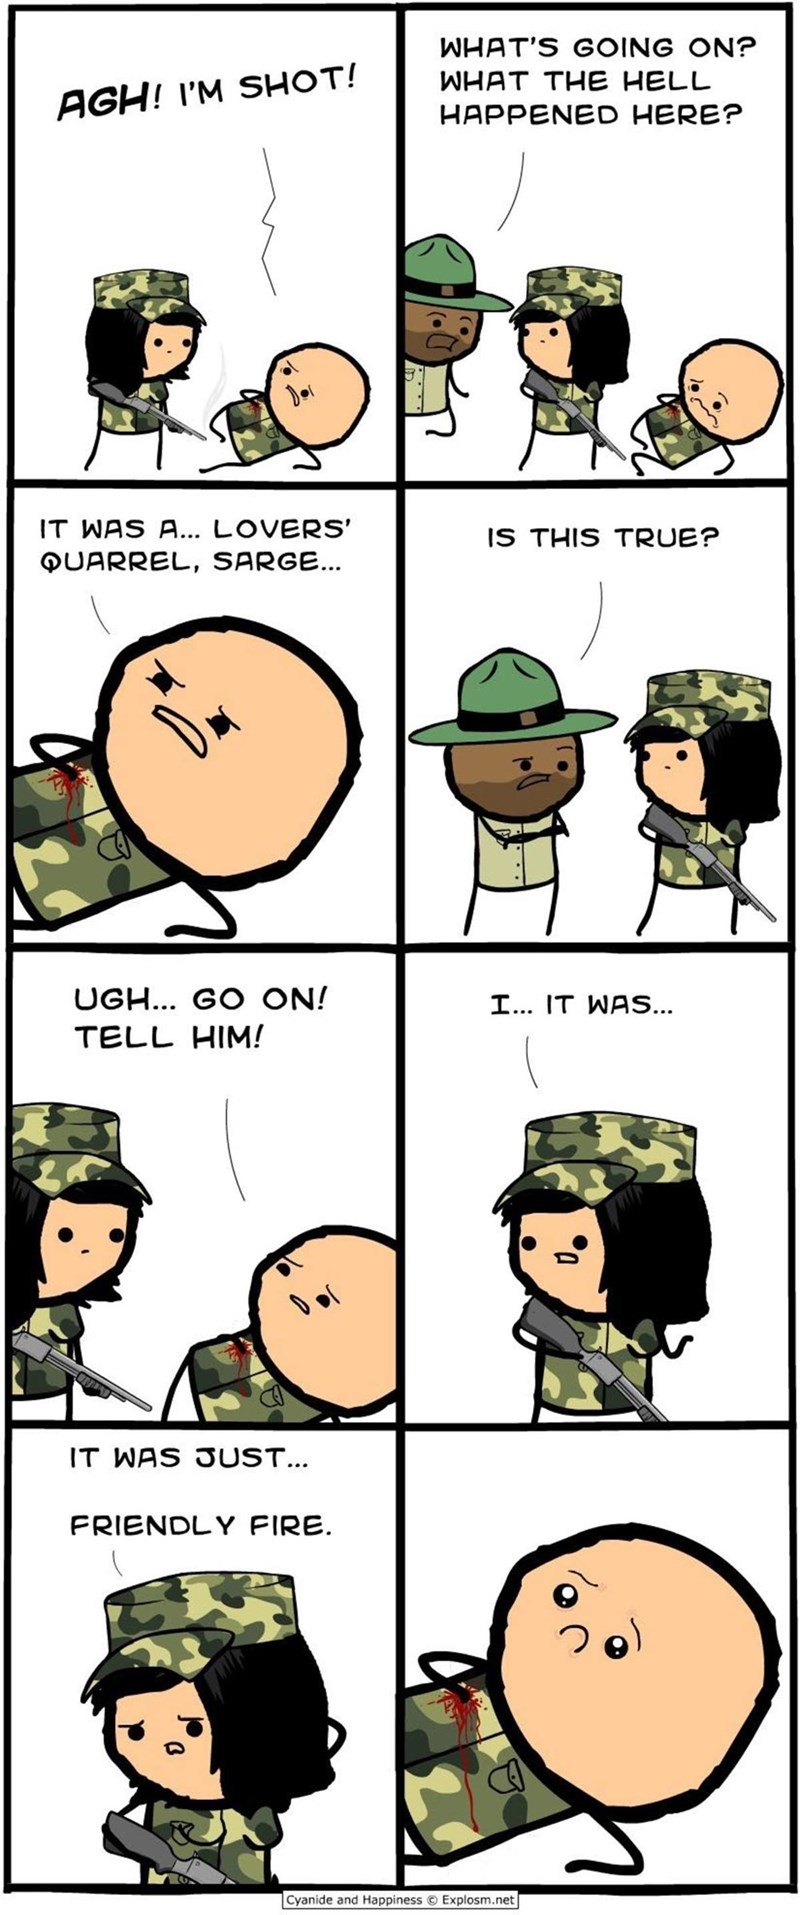 Cartoon - WHAT'S GOING ON? WHAT THE HELL AGH! I'M SHOT! HAPPENED HERE? IT WAS A... LOVERS' QUARREL, SARGE... IS THIS TRUE? UGH... GO ON! I... IT WAS... TELL HIM! IT WAS JUST... FRIENDLY FIRE. Cyanide and Happiness Explosm.net